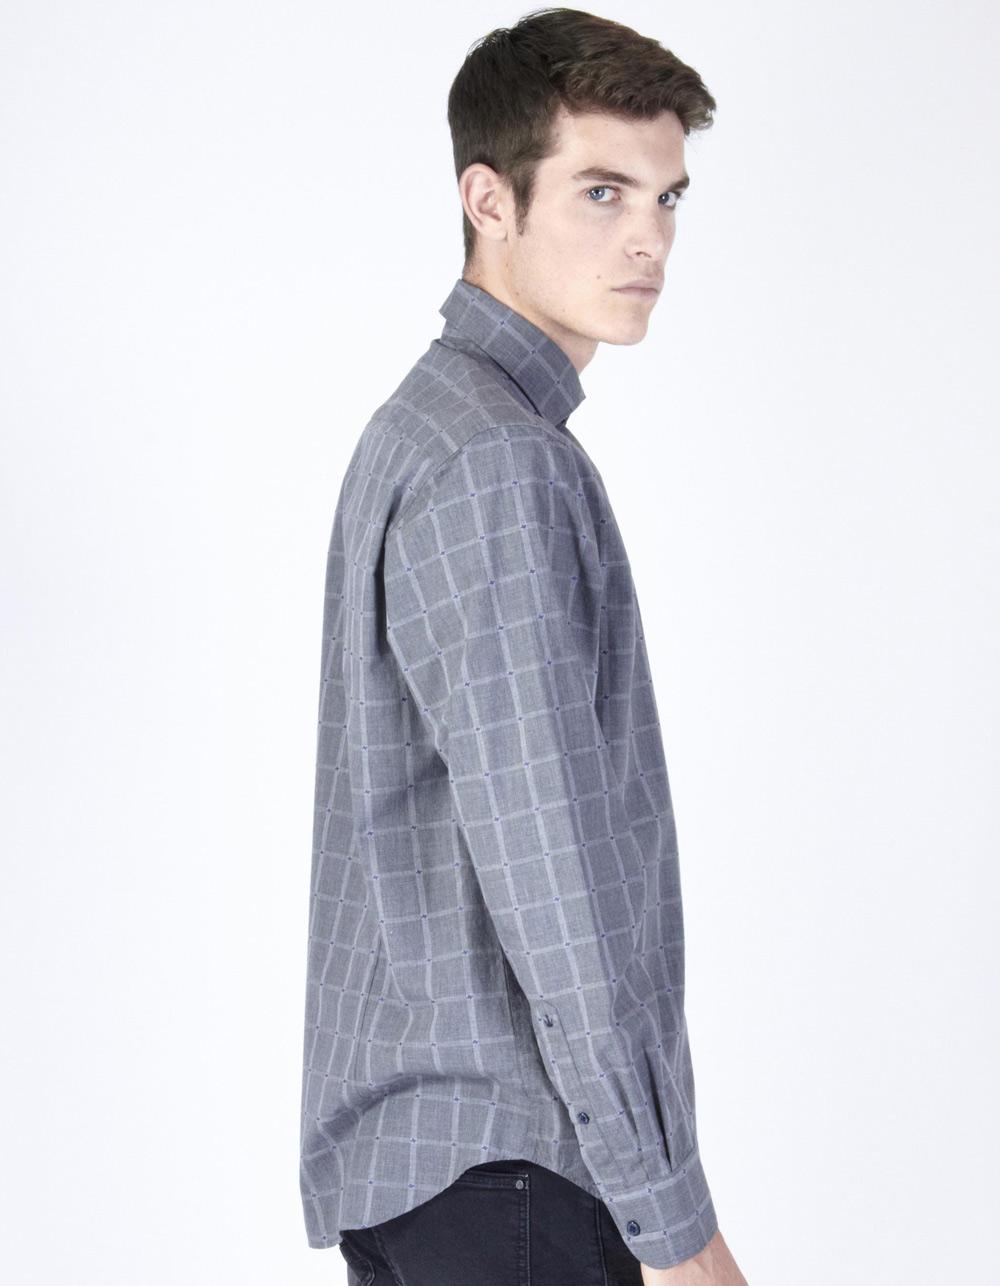 Grey with blue micro-pattern plaid shirt - Backside